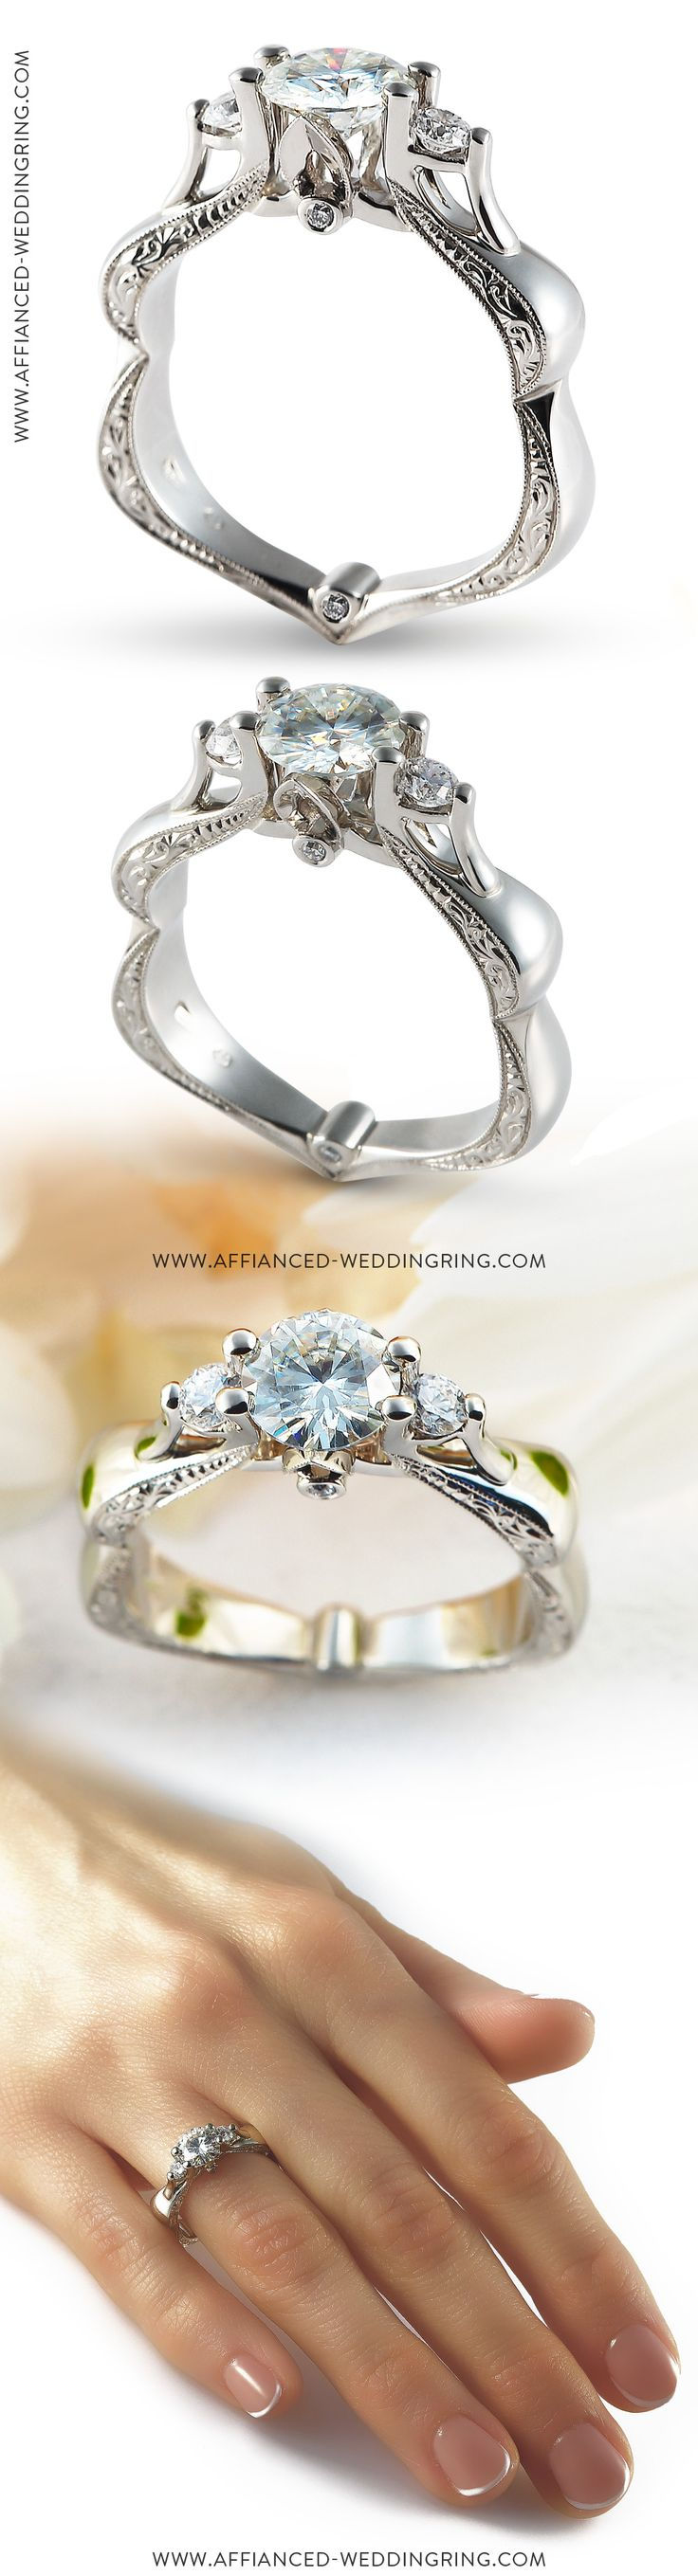 Uniquely designed white gold engagement ring decorated with center 1ct diamond 2 pcs diamonds and hand engraving.